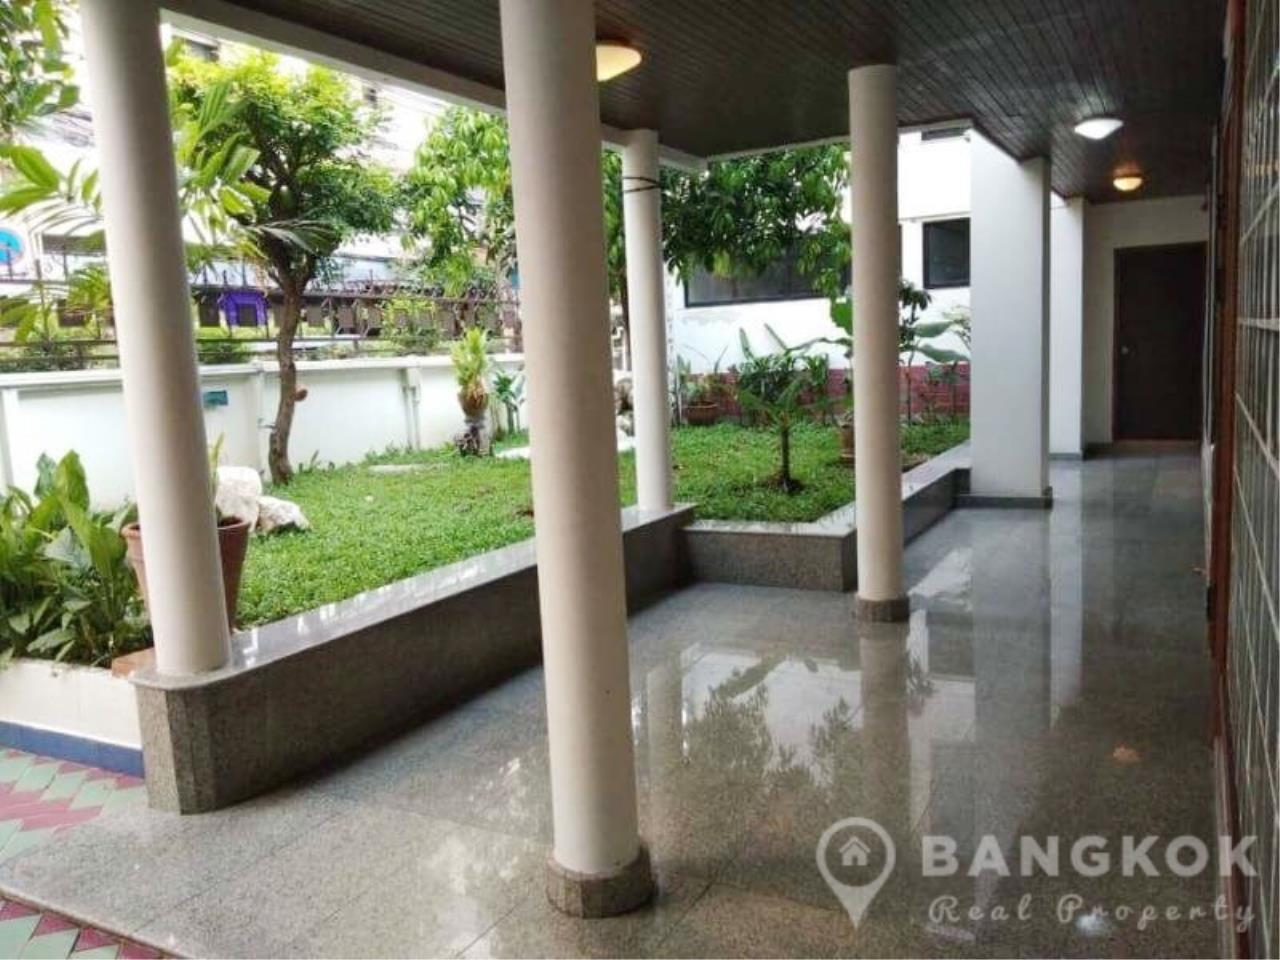 Bangkok Real Property Agency's Detached Spacious 3 + 1 Bed 3 Bath house with Garden in Nana  2